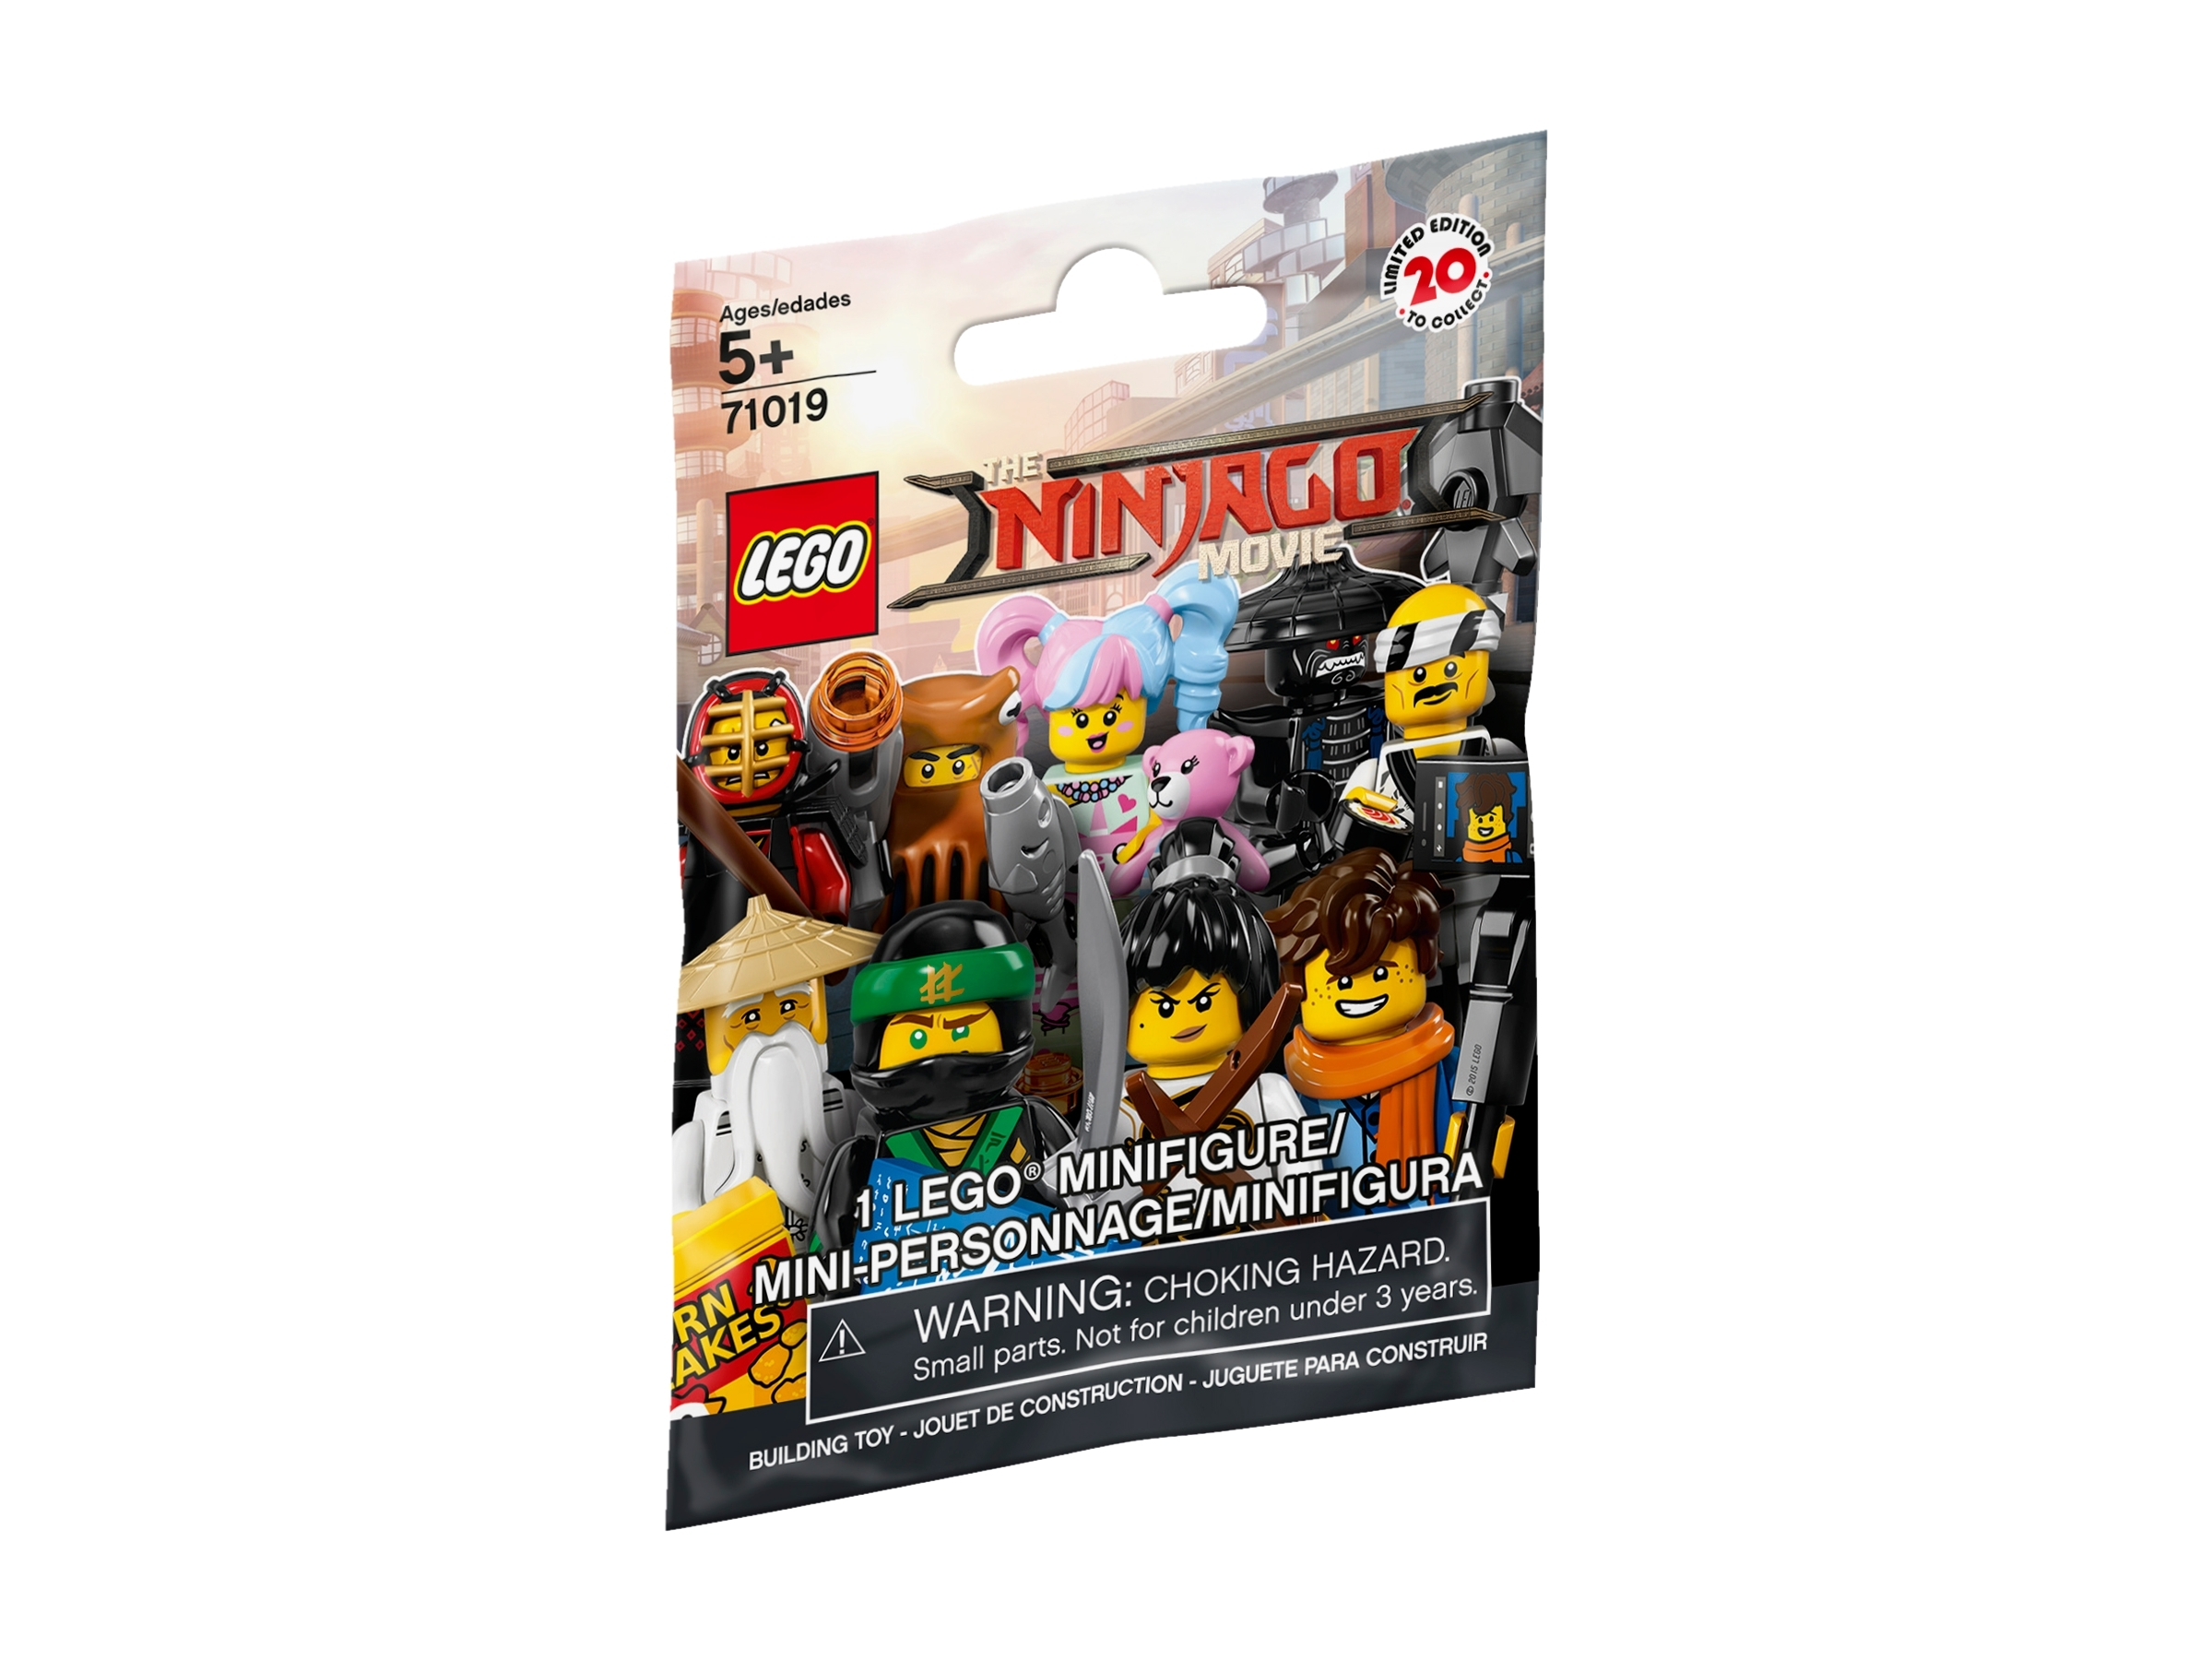 Retired. LEGO Minifigures The Ninjago Movie New Unopened Blind Pack